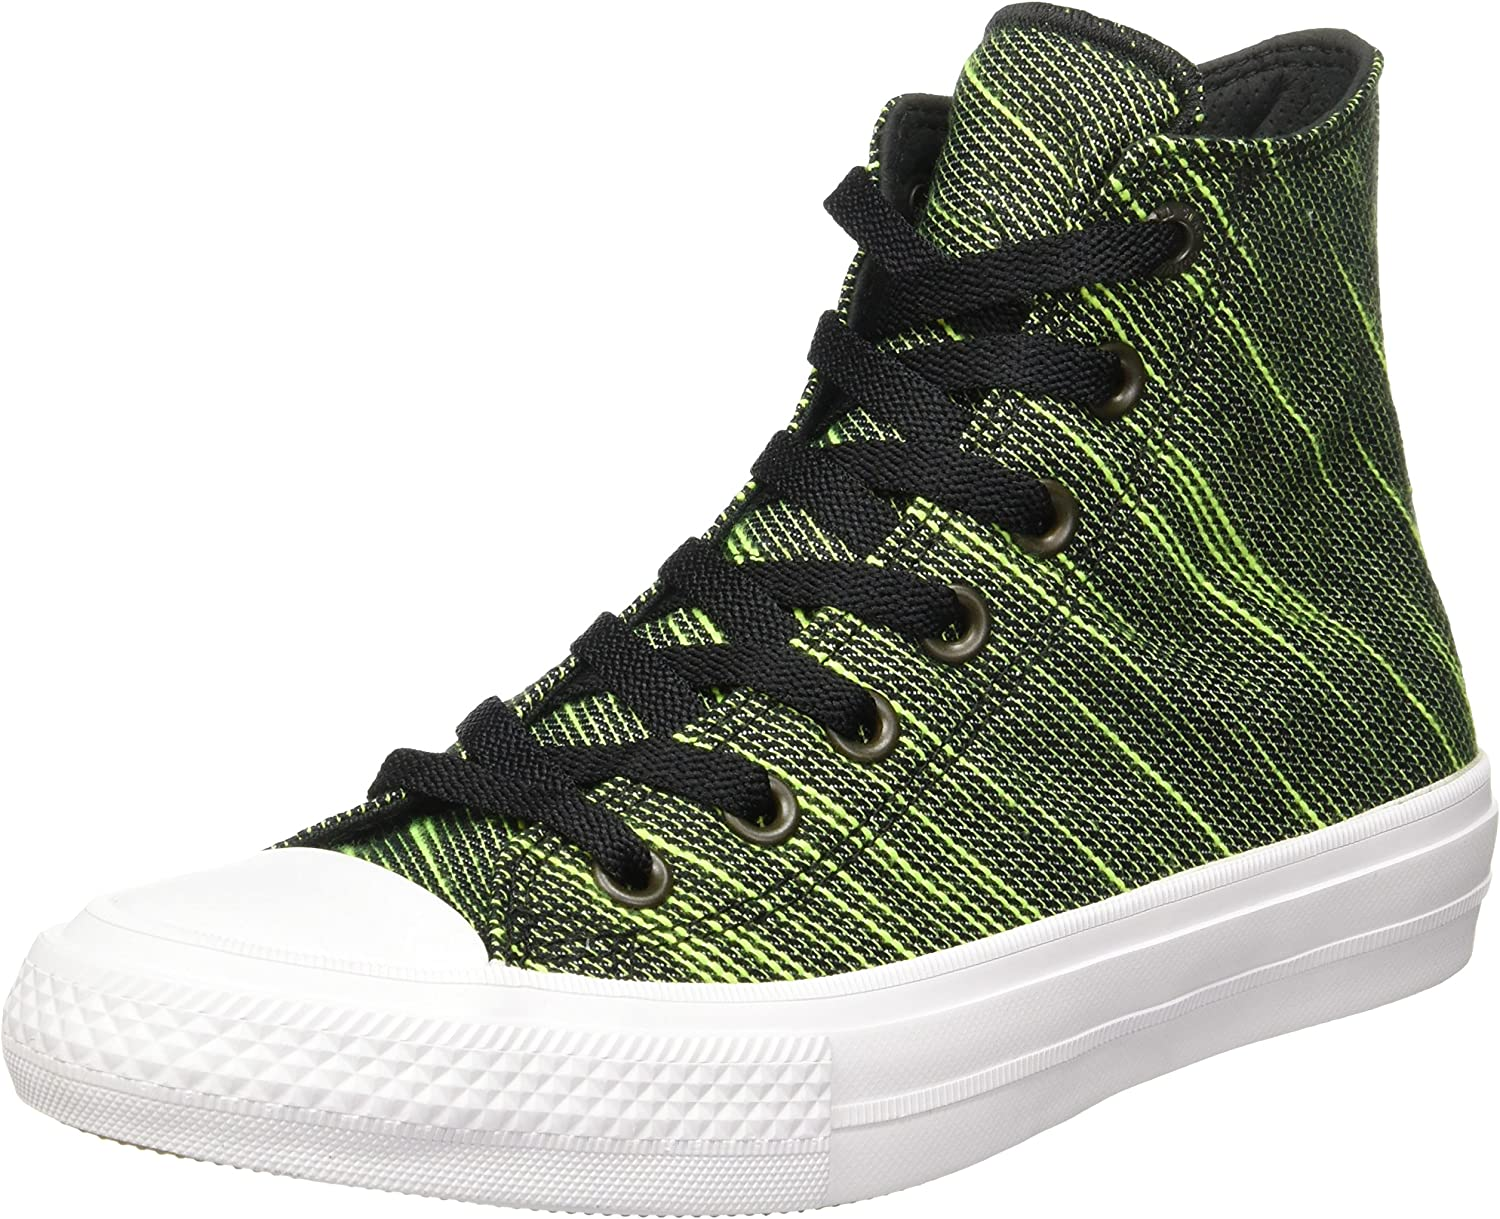 Converse Unisex Adults Sneakers Chuck Taylor All Star Ii C151086 Hi-Top